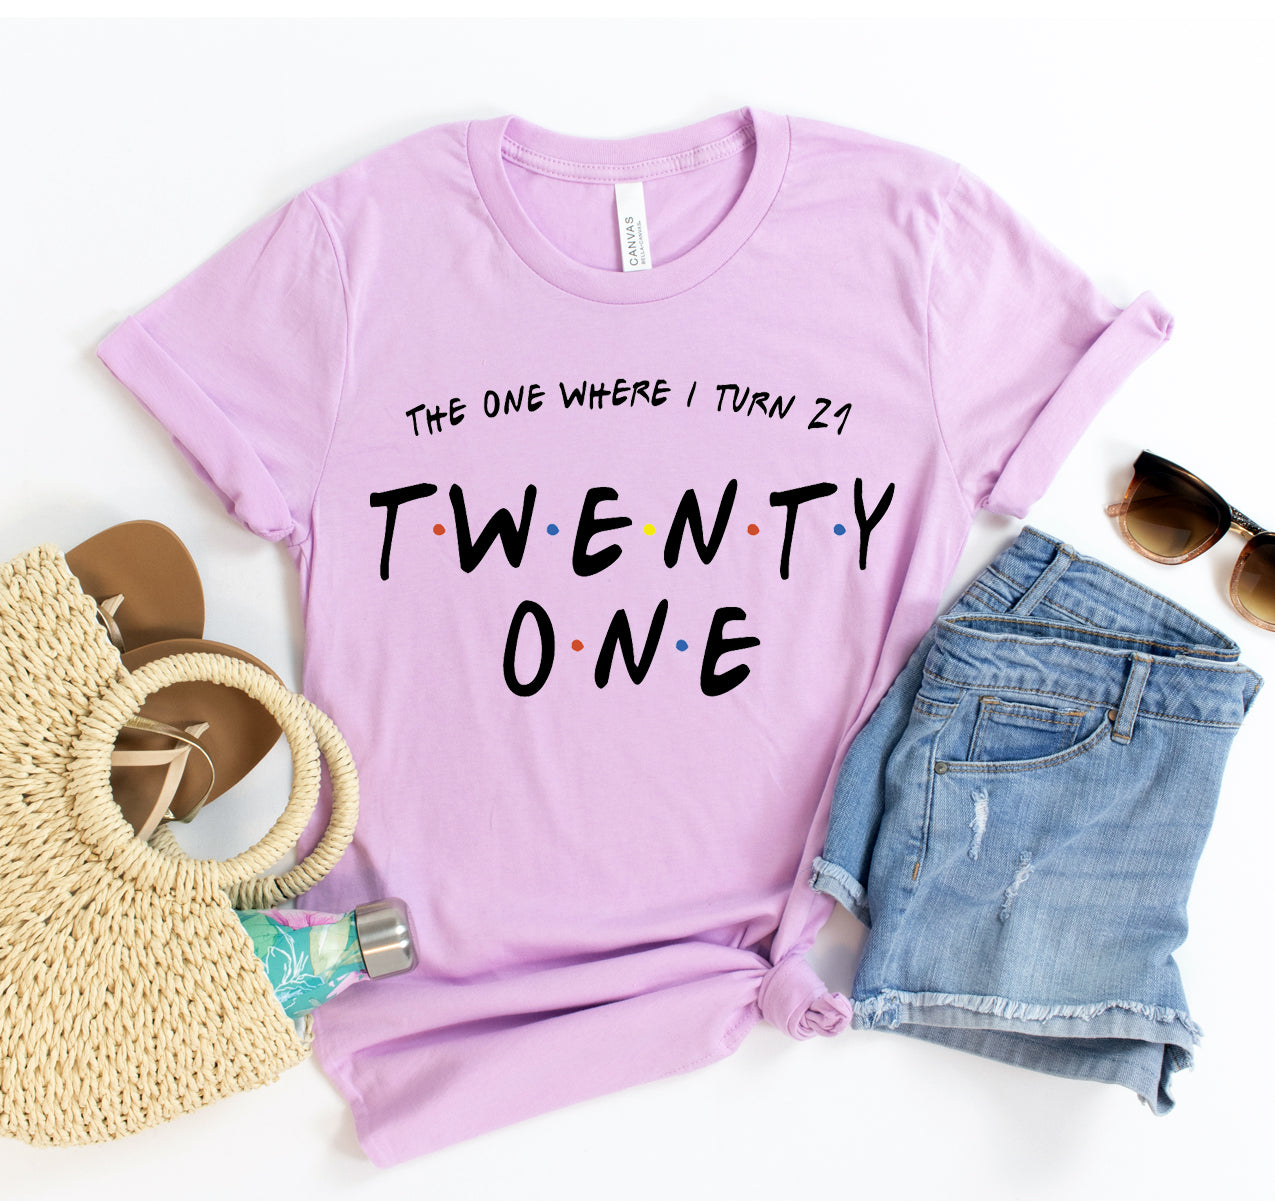 The One Where i Turn Twenty One T-shirt